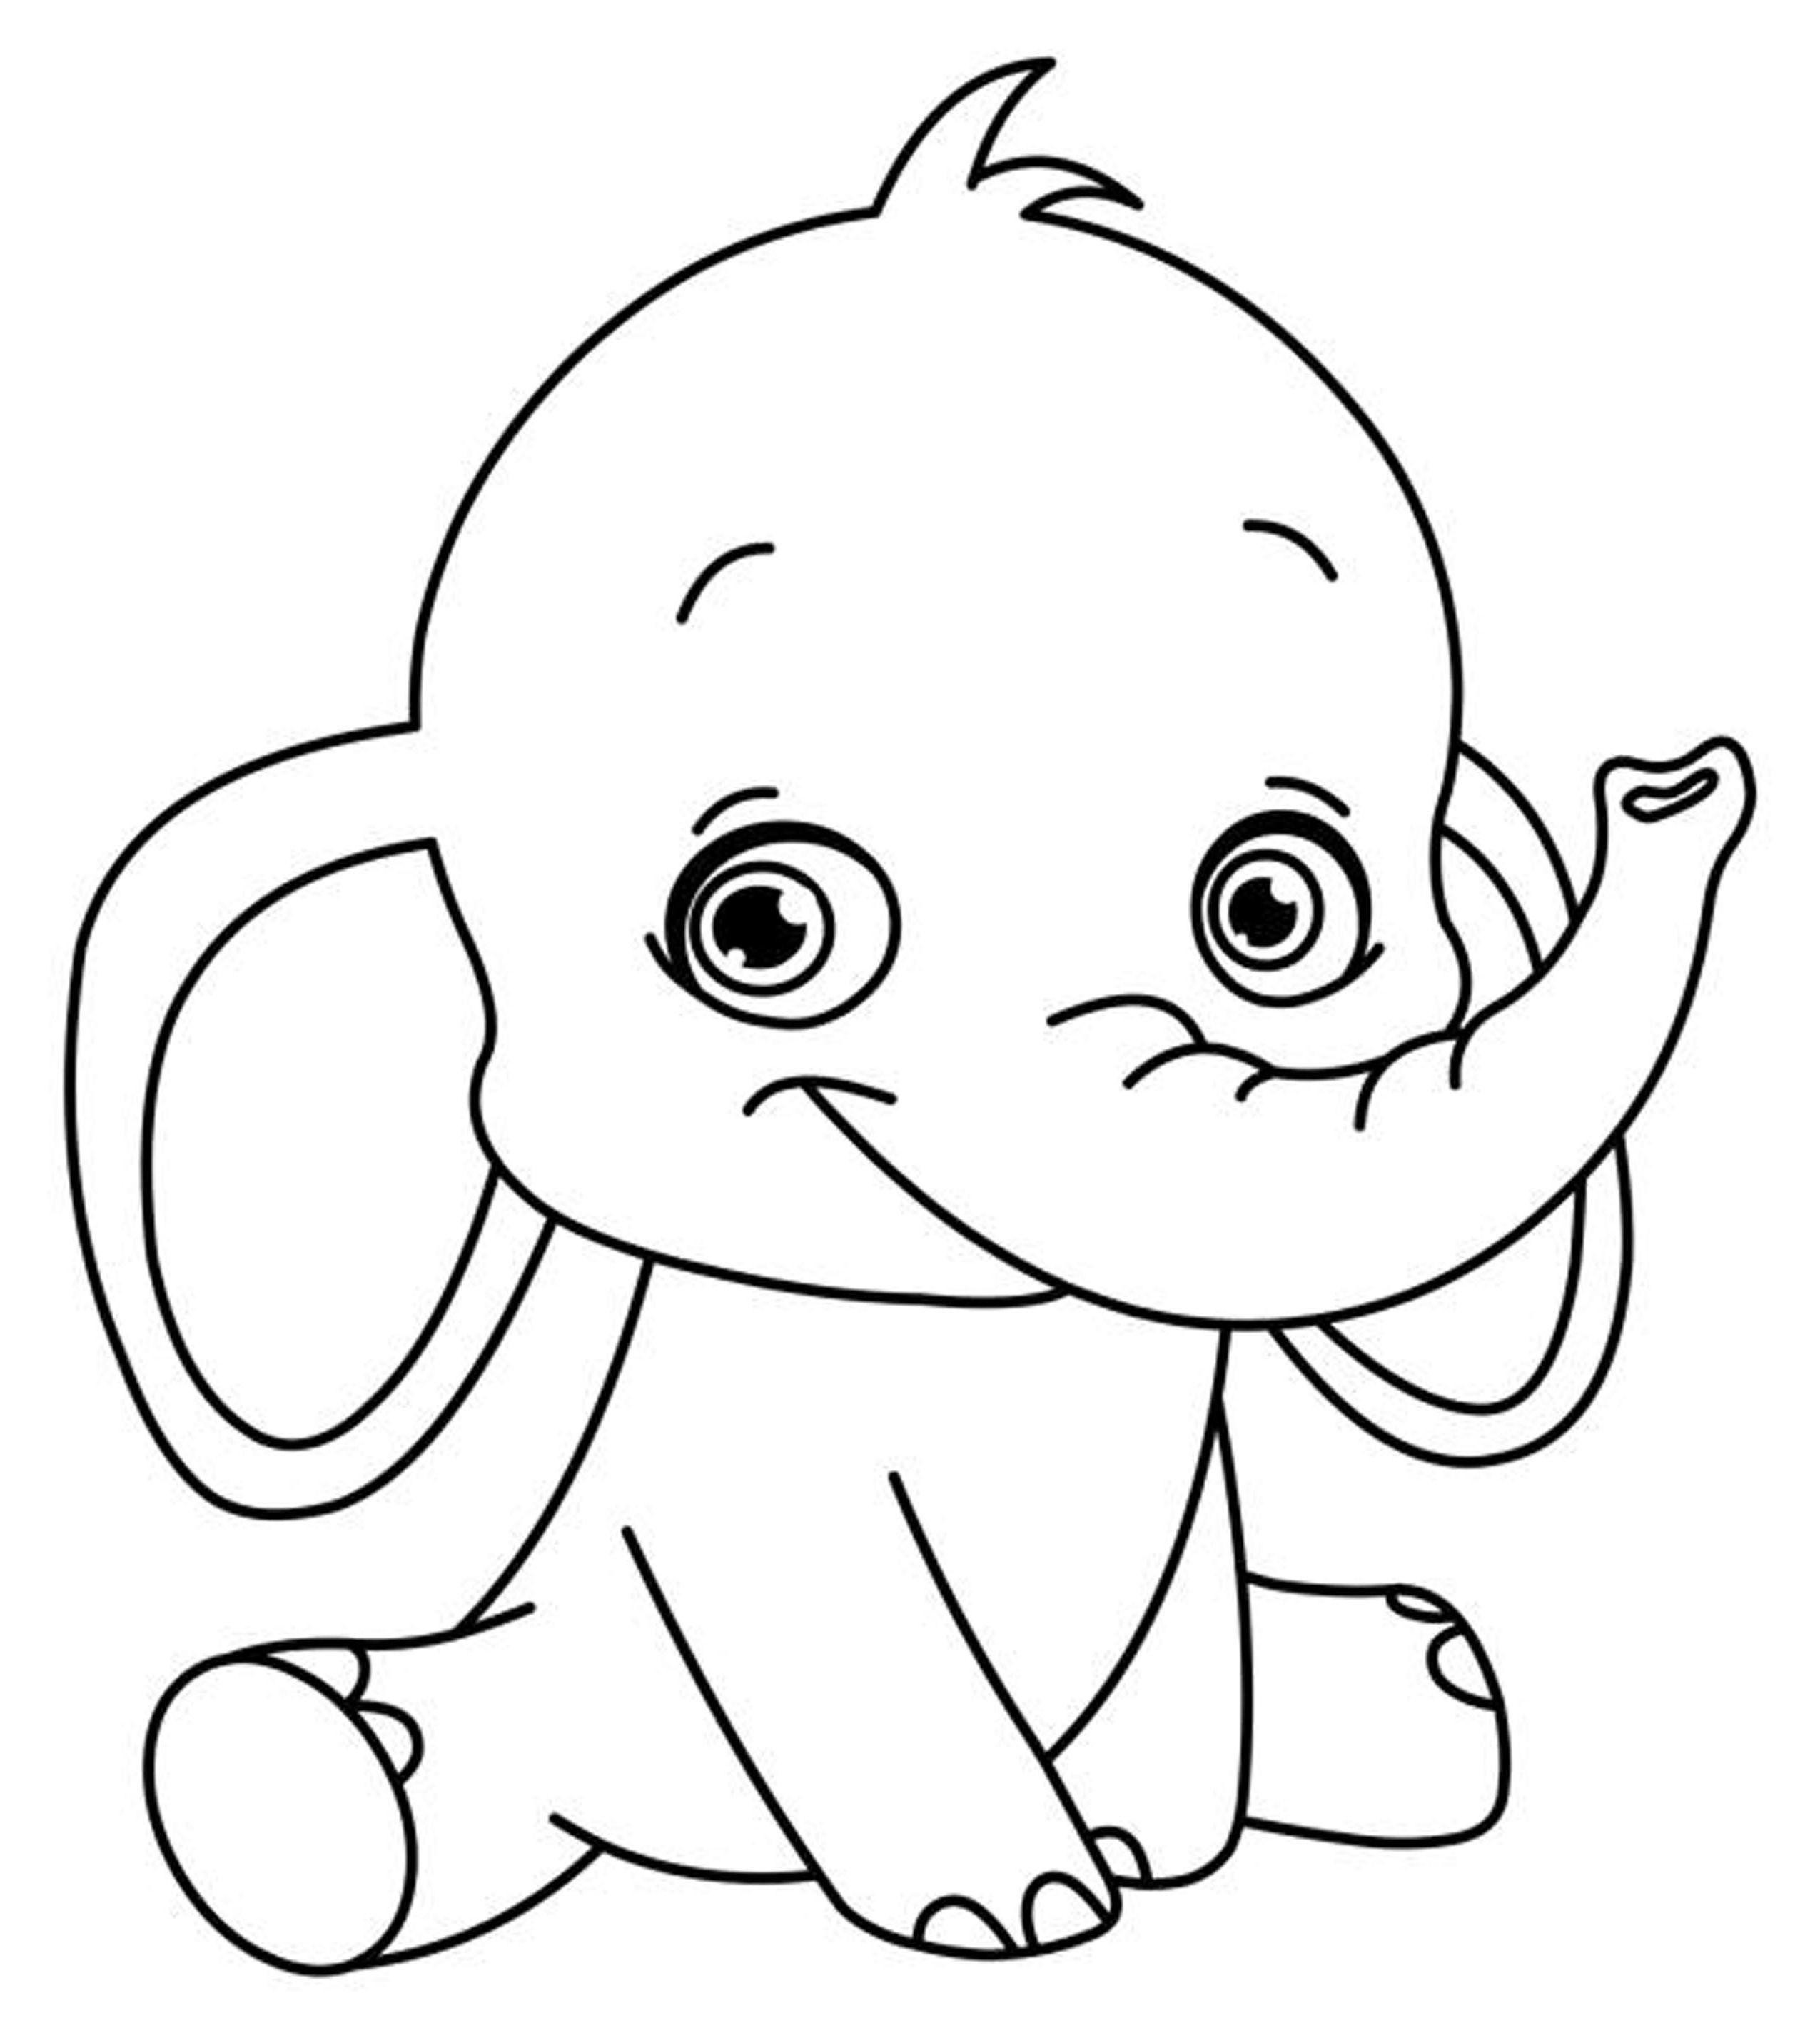 color pages for toddlers free printable chibi coloring pages for kids color pages toddlers for